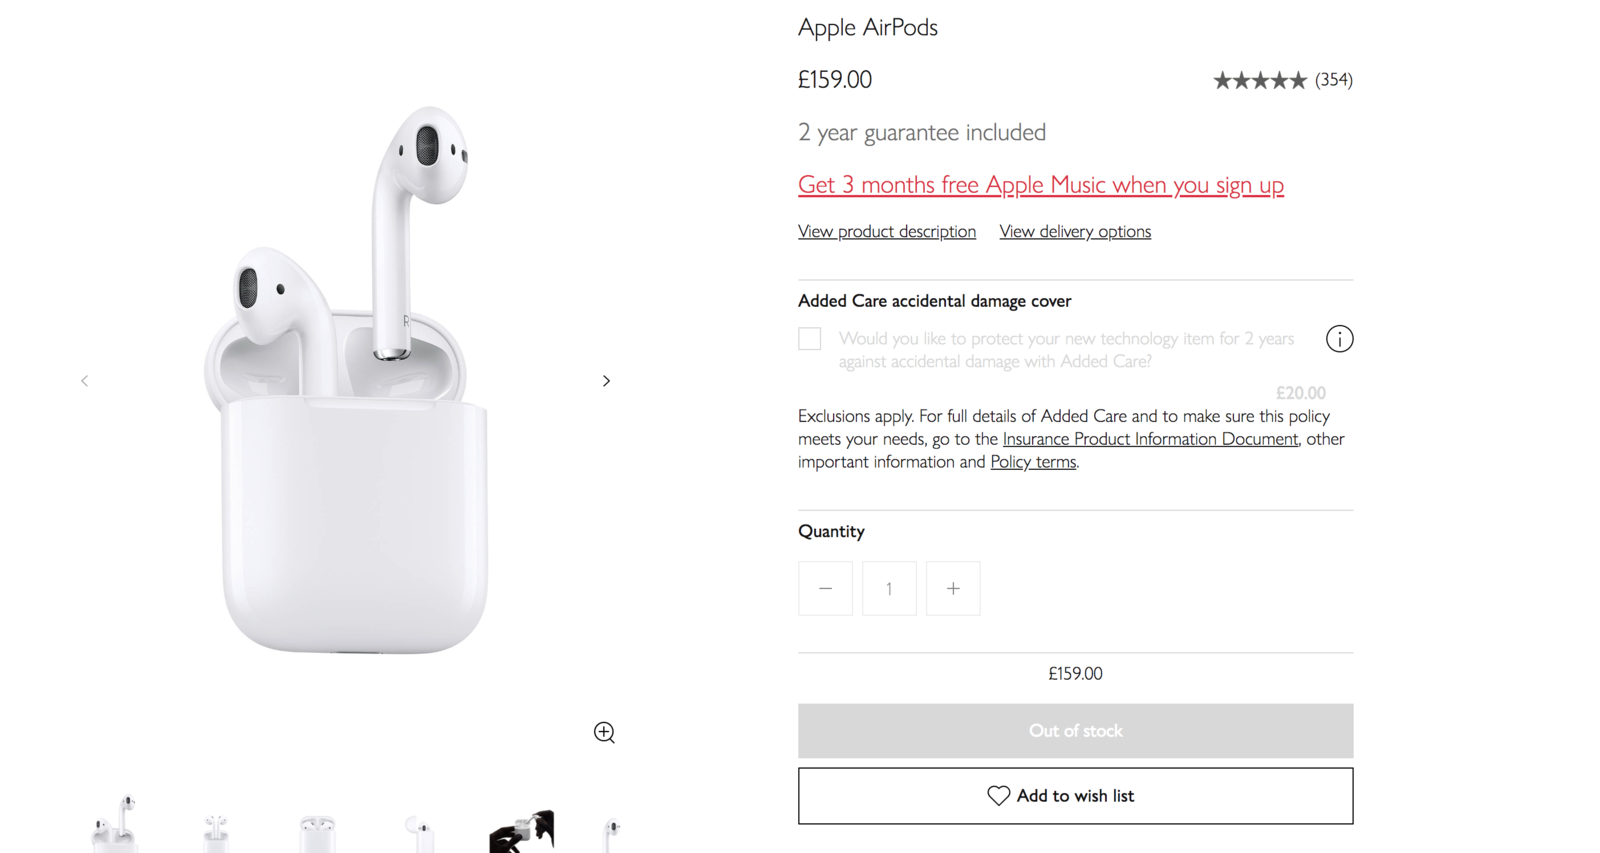 Apple AirPods Became A Meme And Now They're Sold Out In Many Stores